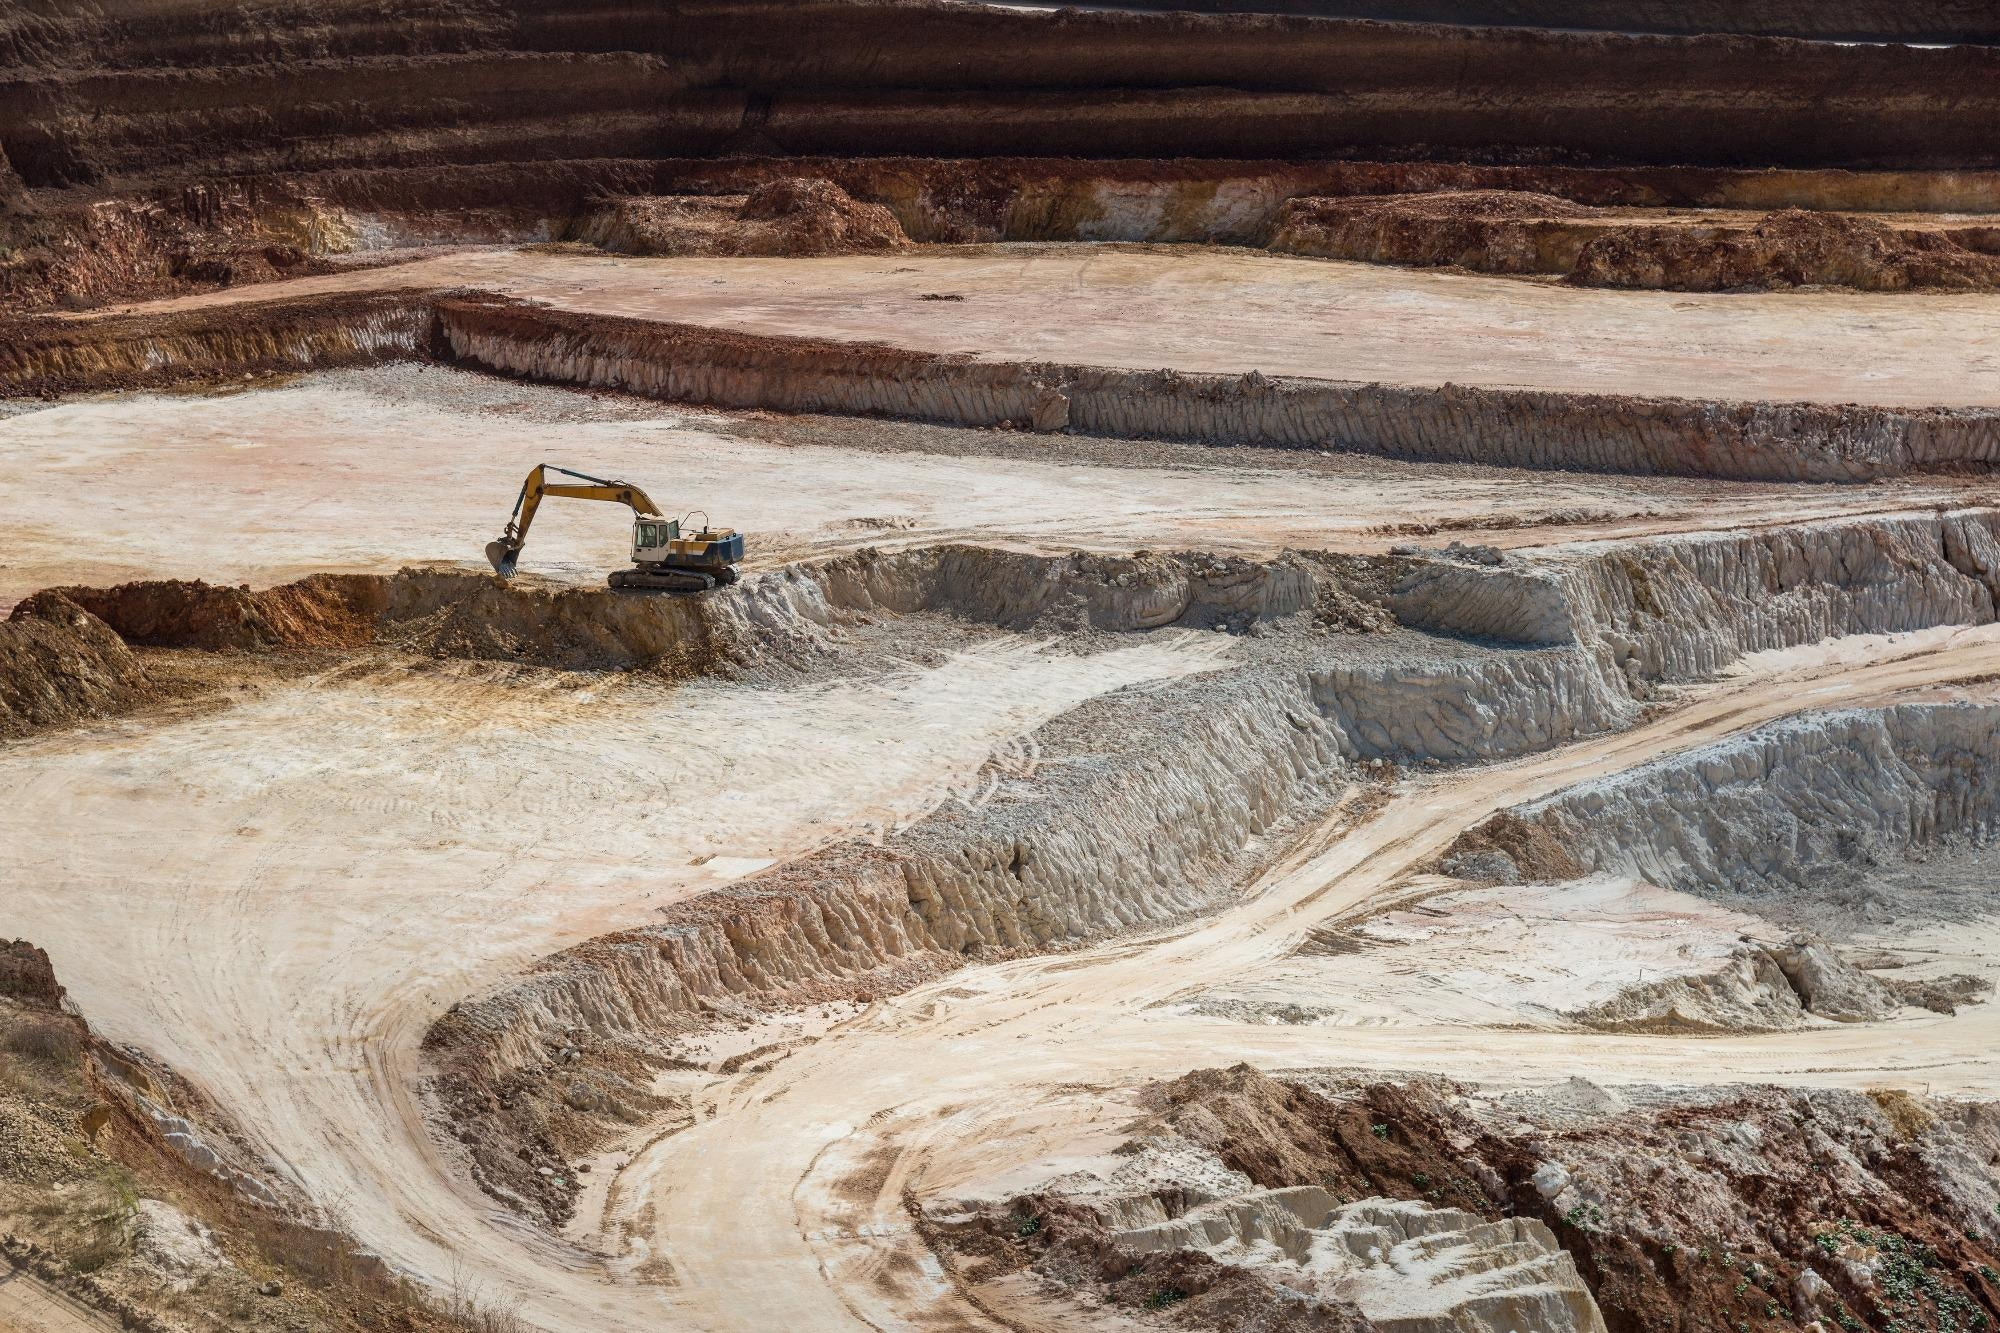 Arizona's Lithium Clay Rights have been Awarded to Ameriwest Lithium.